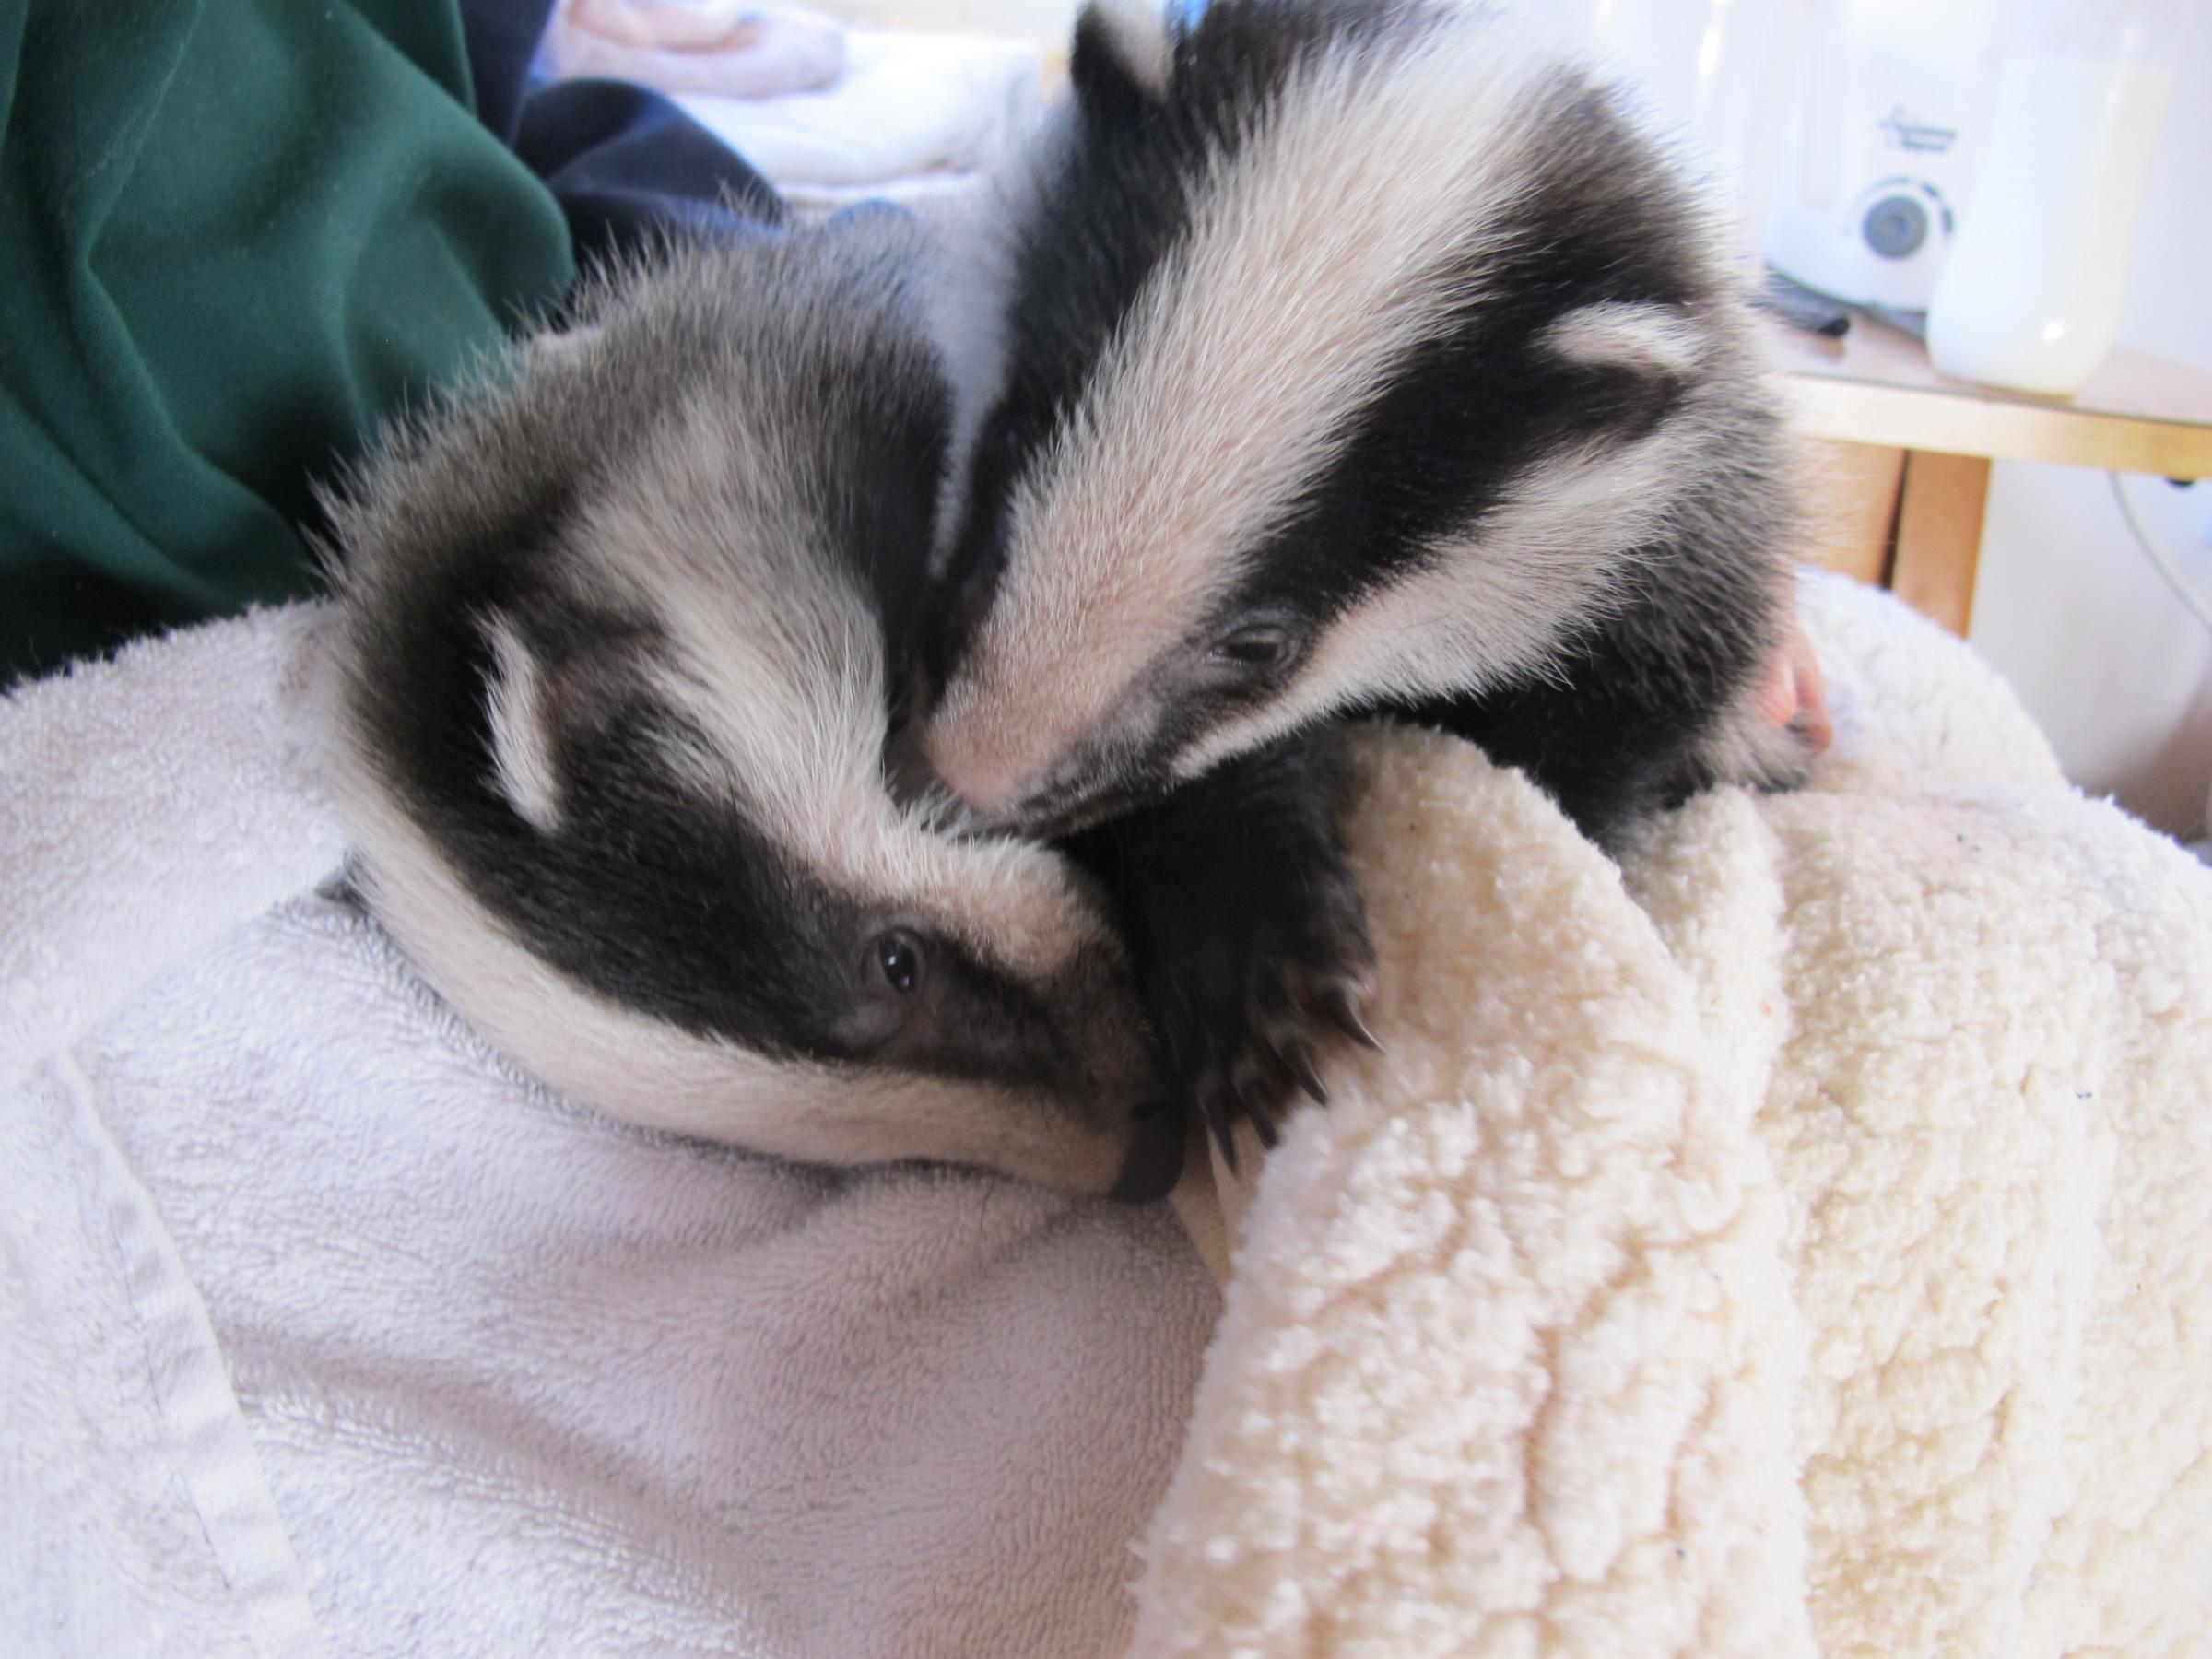 RESCUED: The badger cubs being treated by Secret World staff